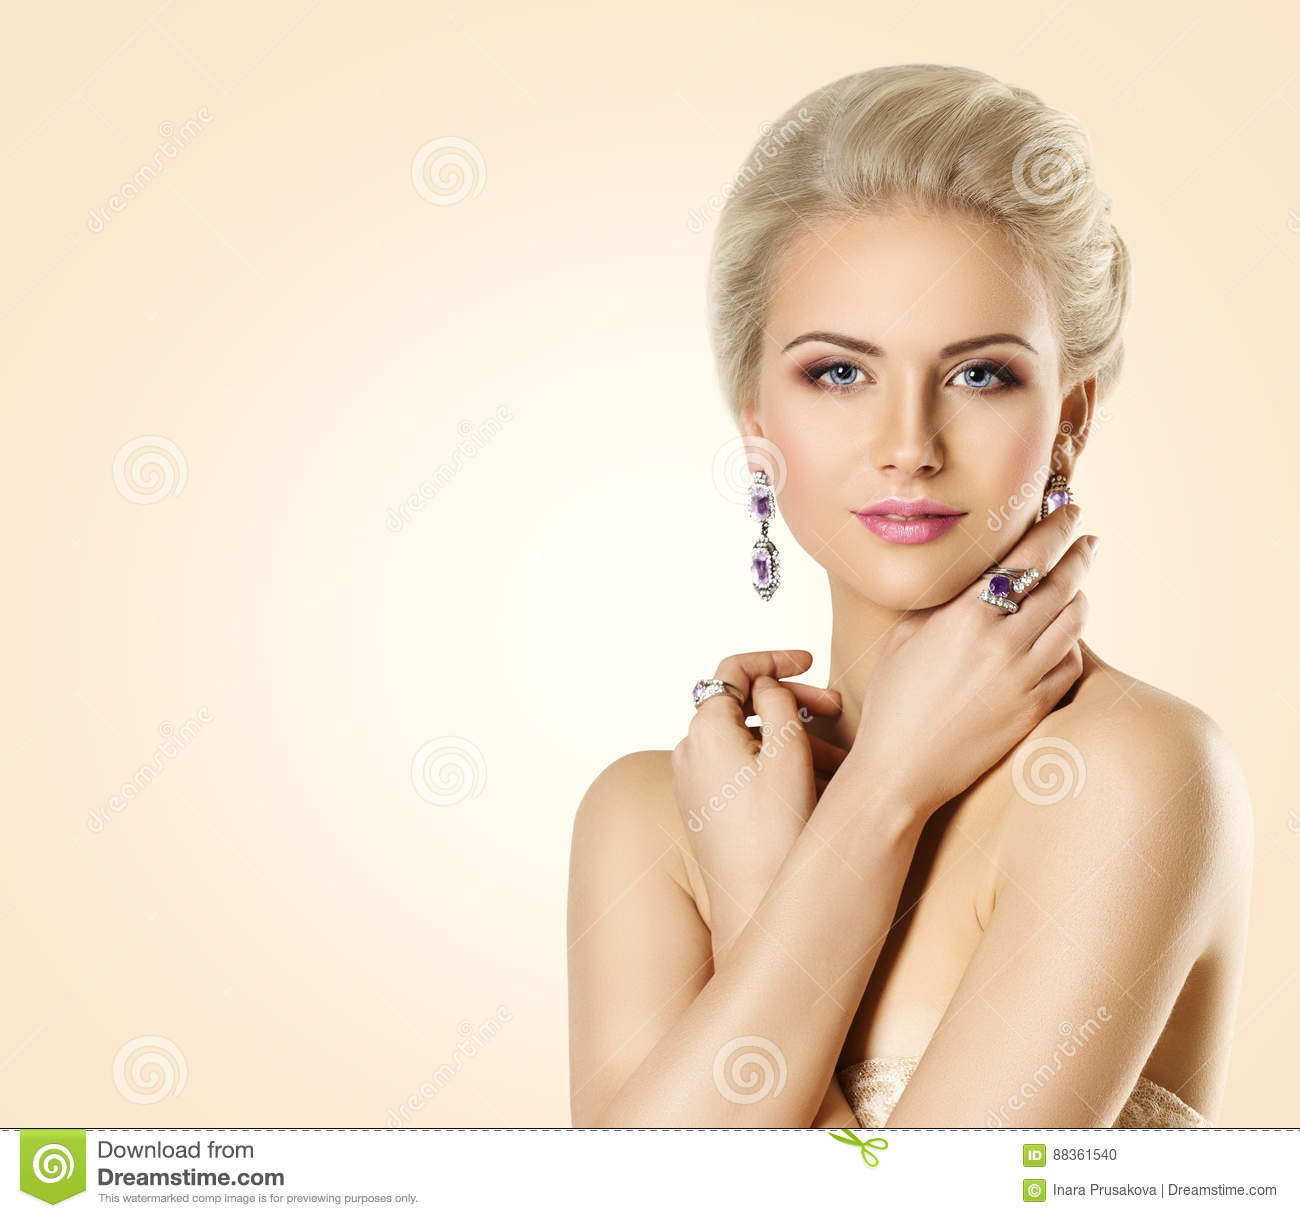 Woman Beauty Face And Jewelry, Beautiful Fashion Model